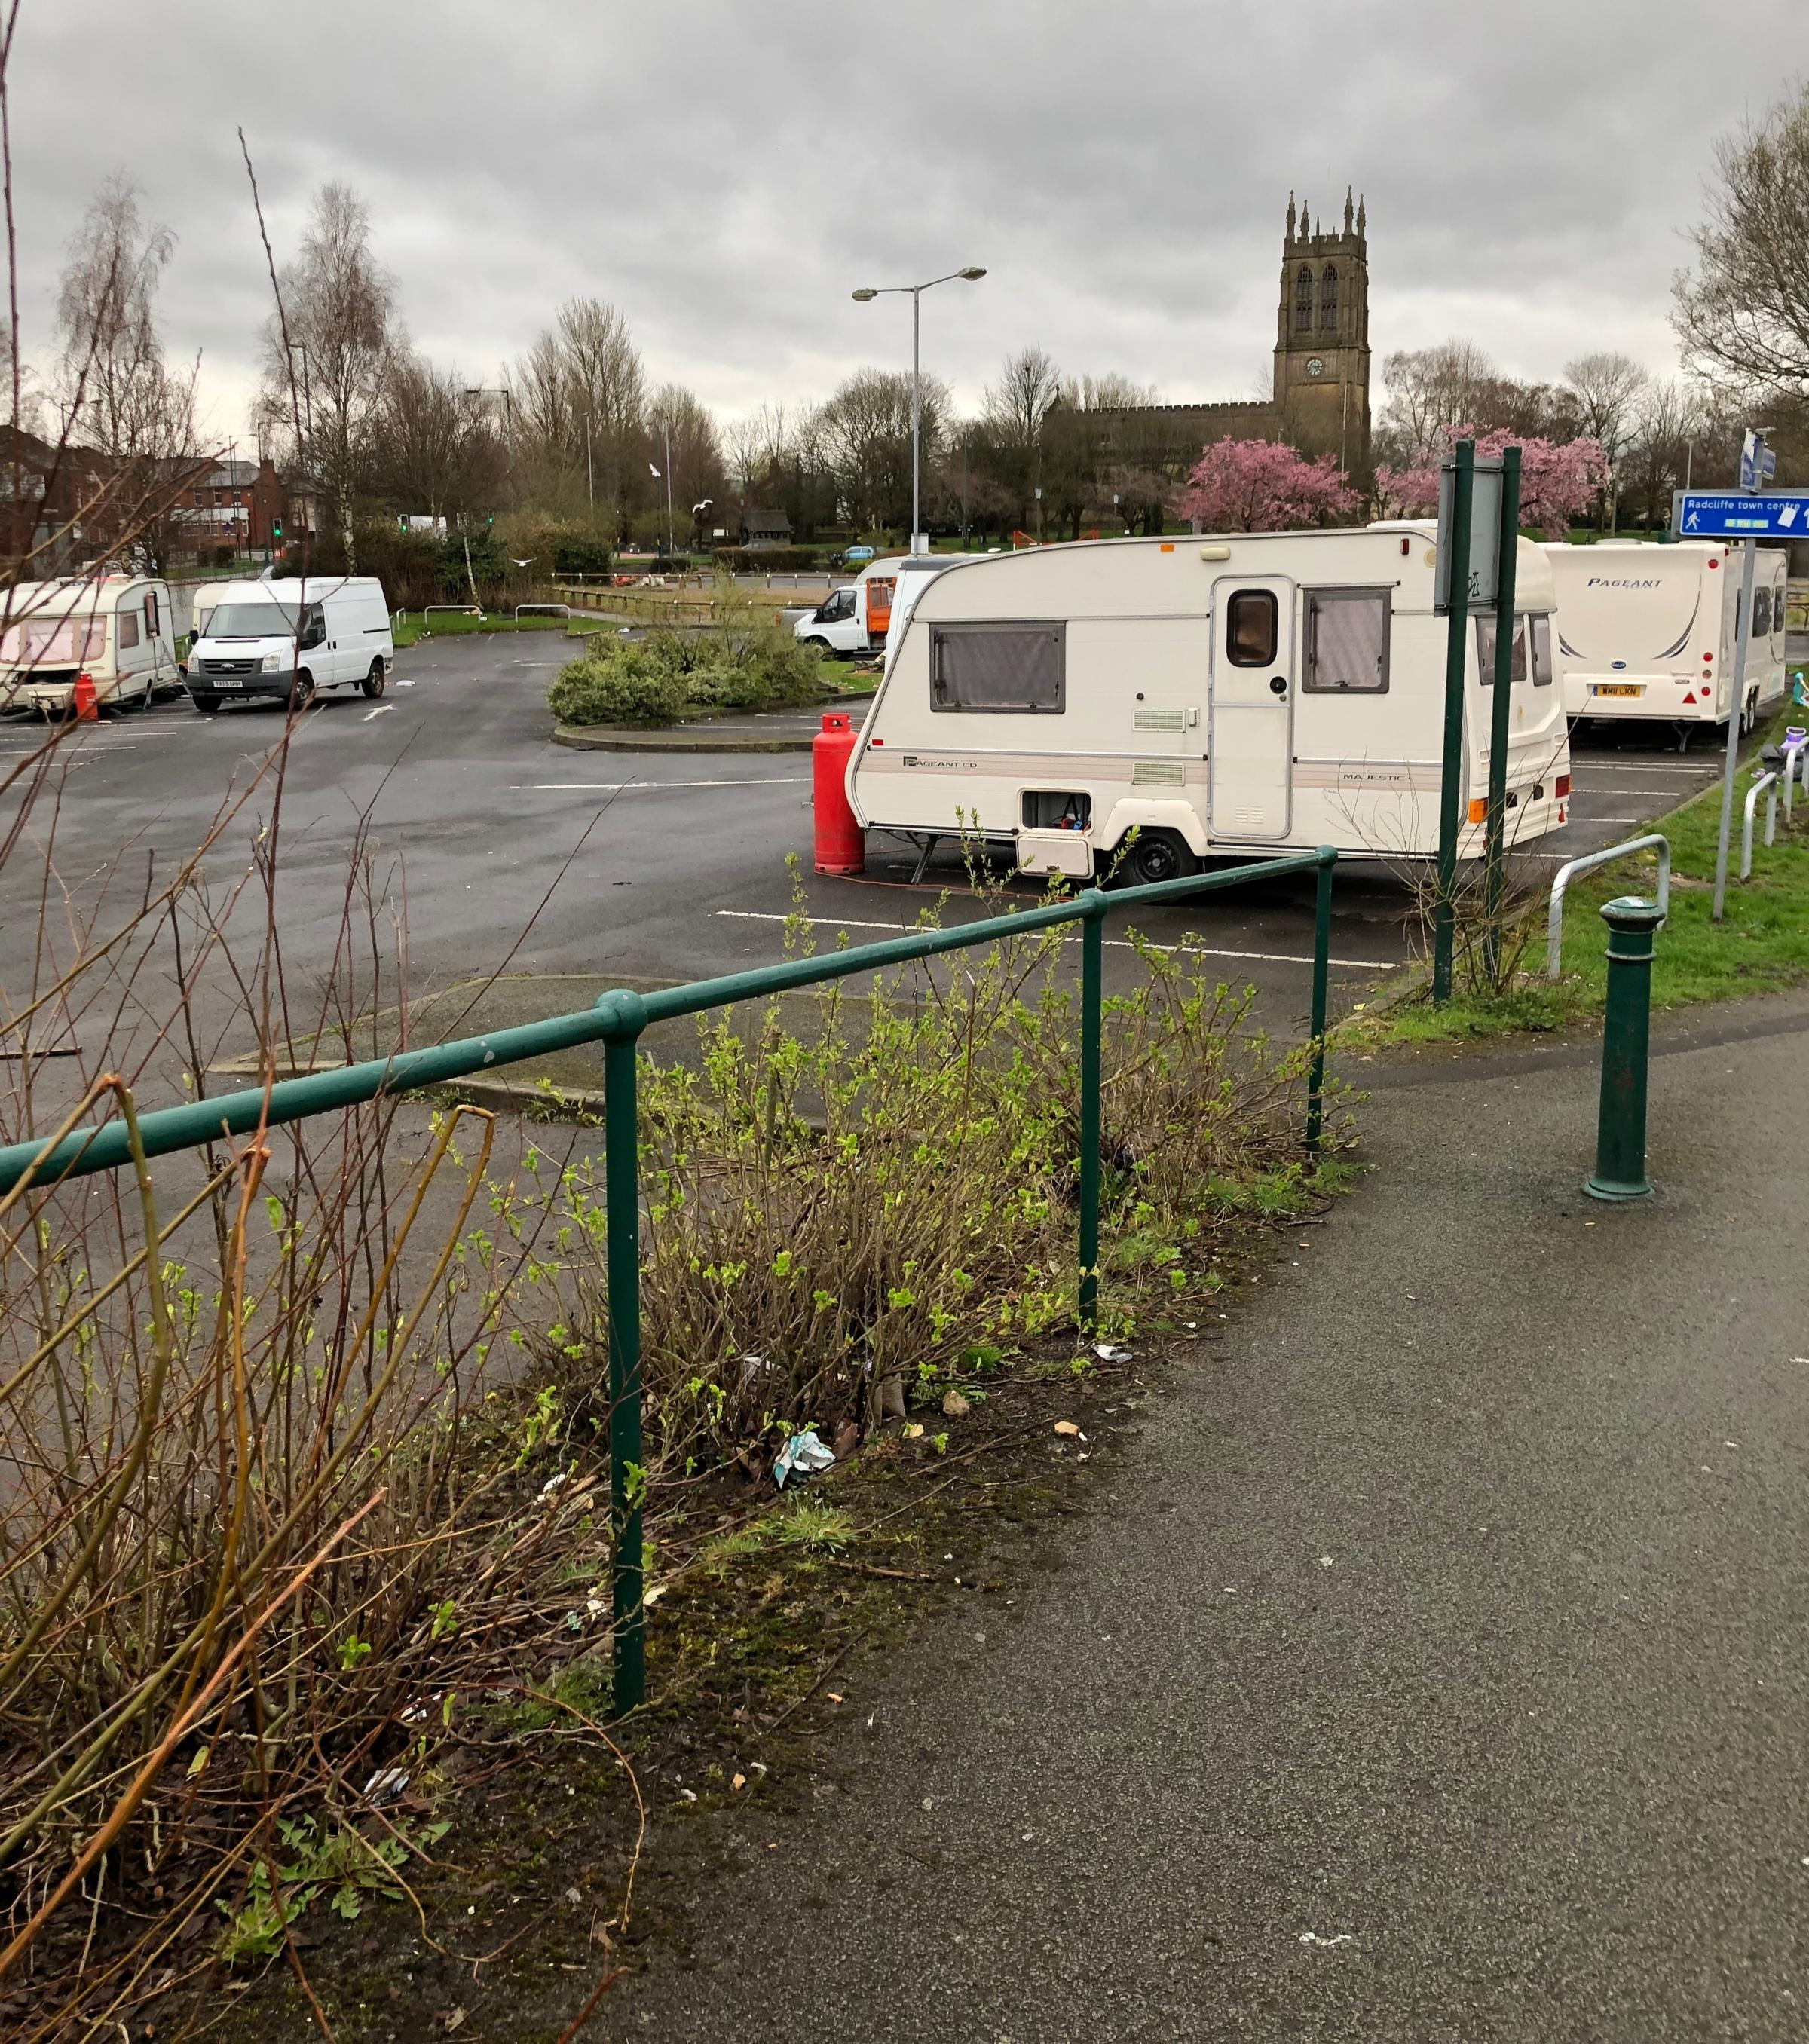 CARAVANS: The travellers who set up in Radcliffe have moved on